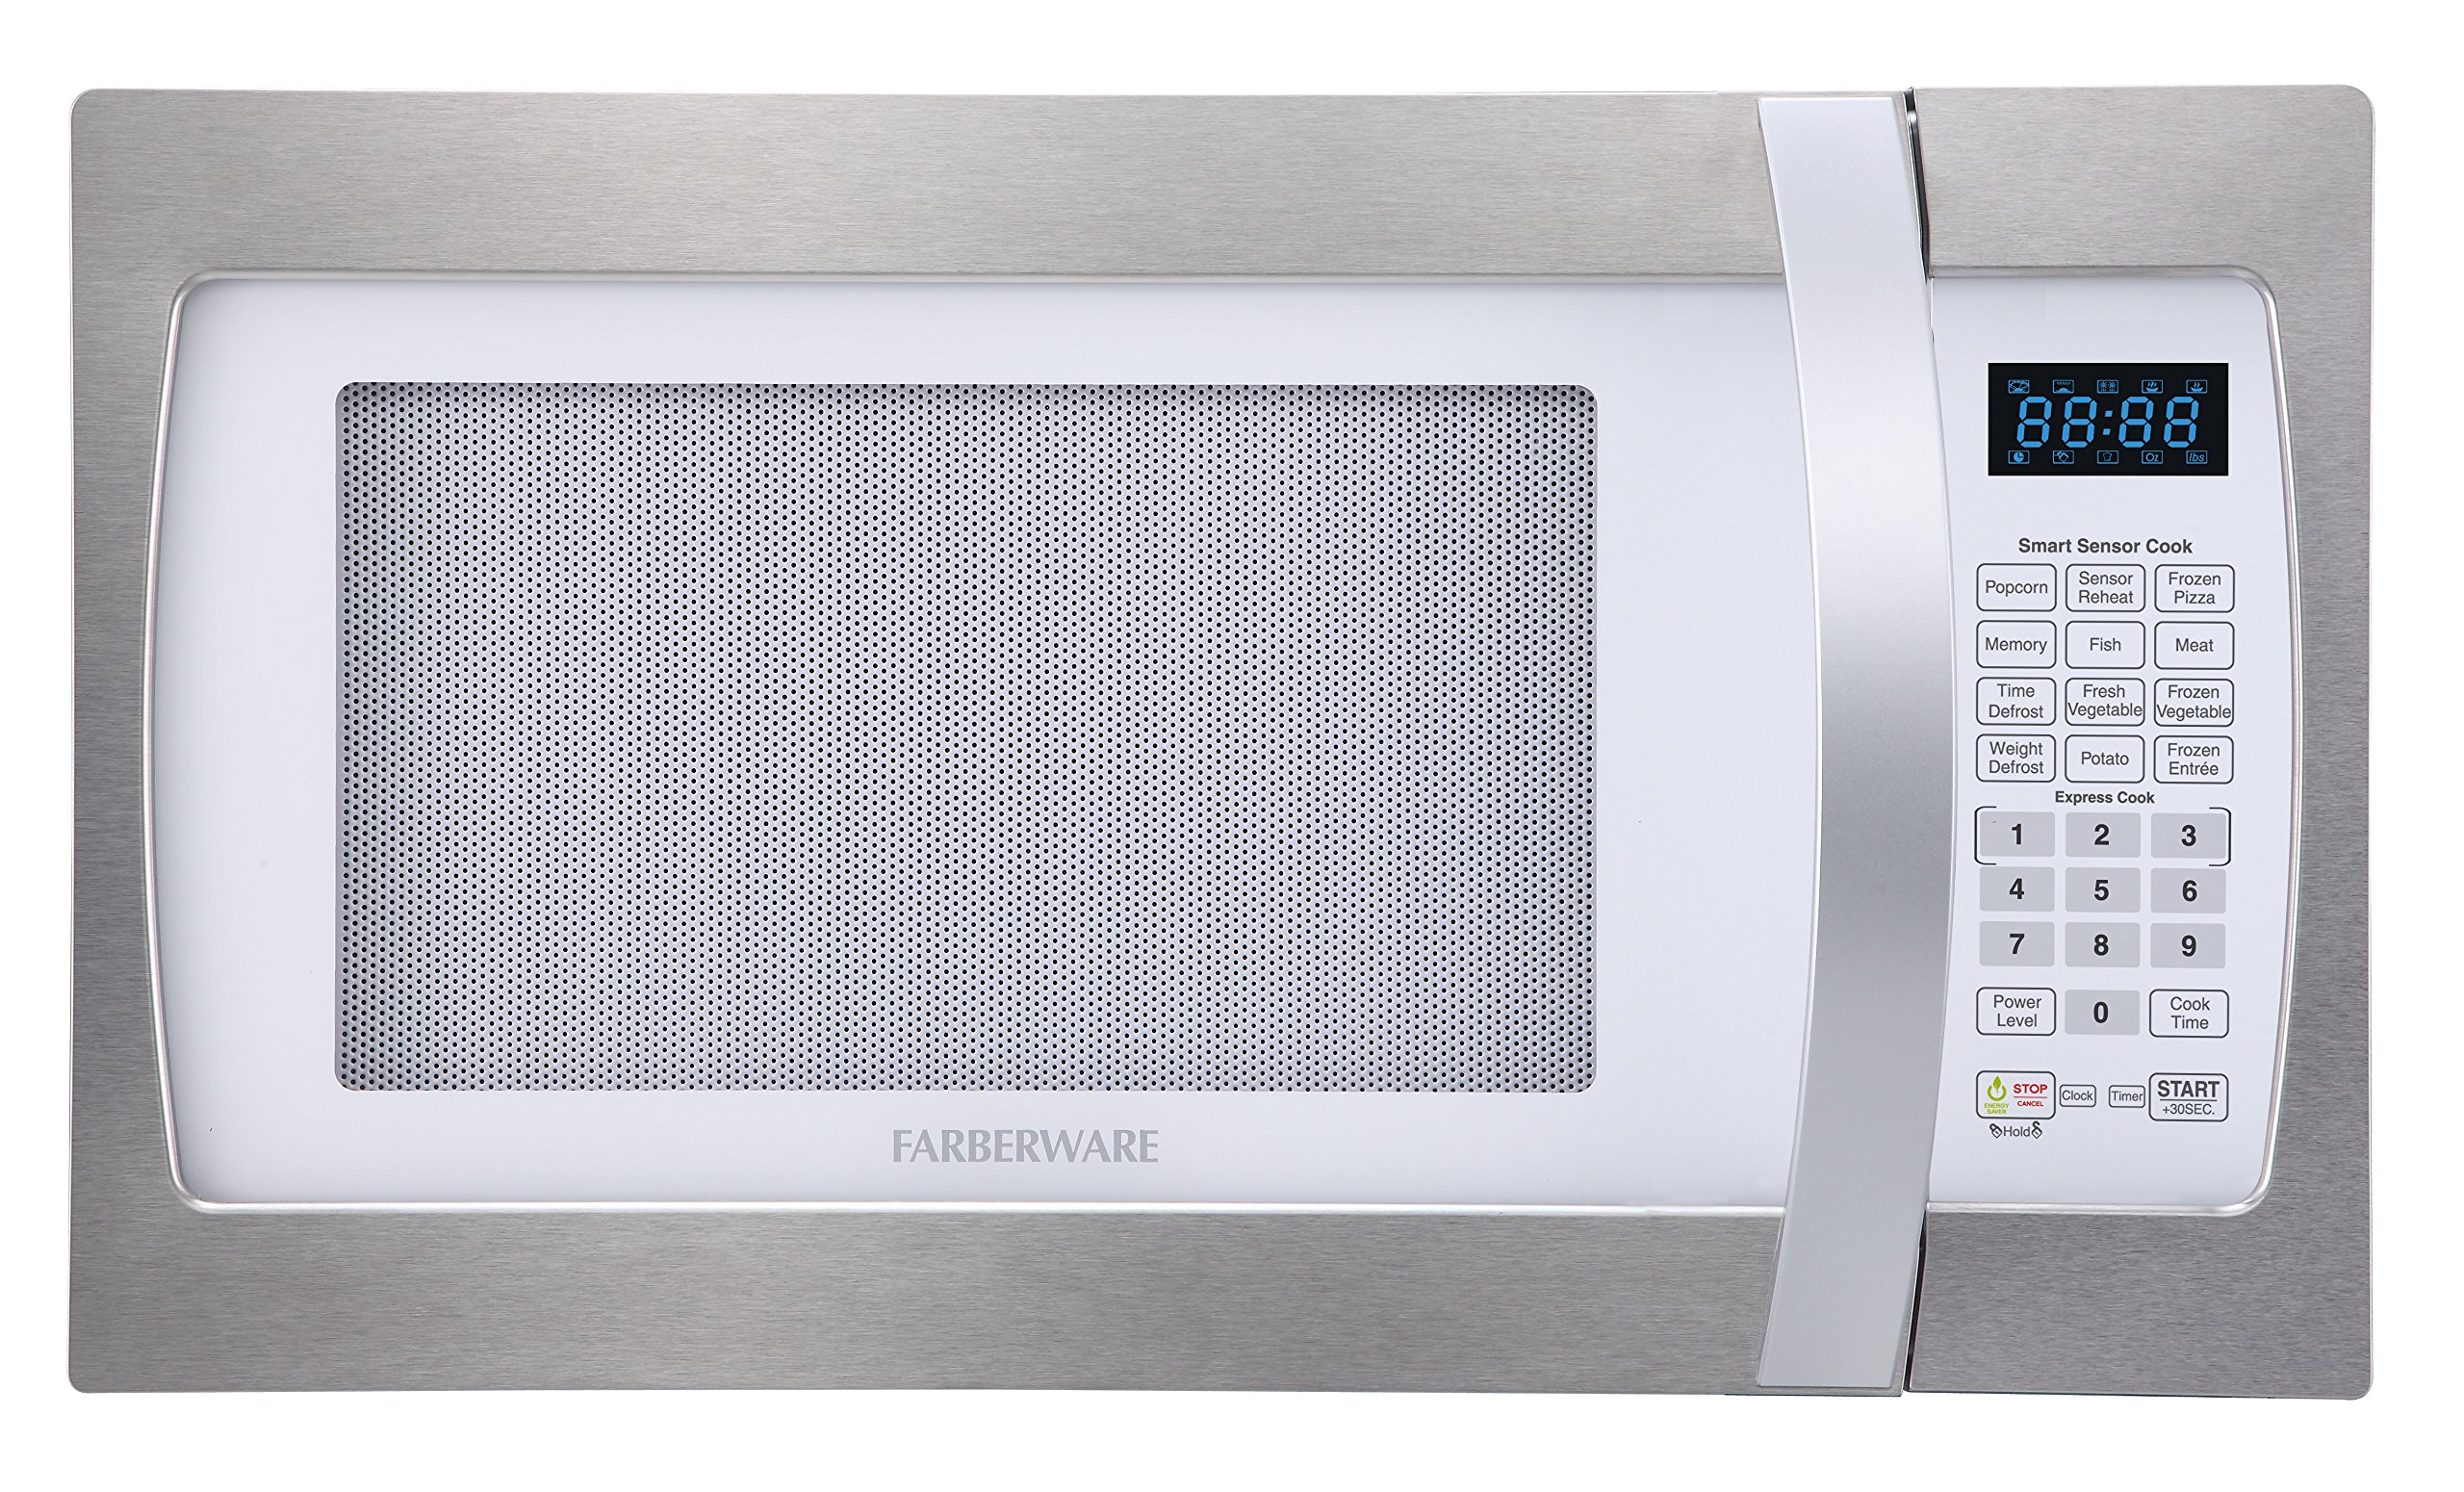 Farberware Professional FMO13AHTPLE 1.3 Cubic Foot 1100-Watt Microwave Oven with Sensor Cooking, White/Platinum by Farberware